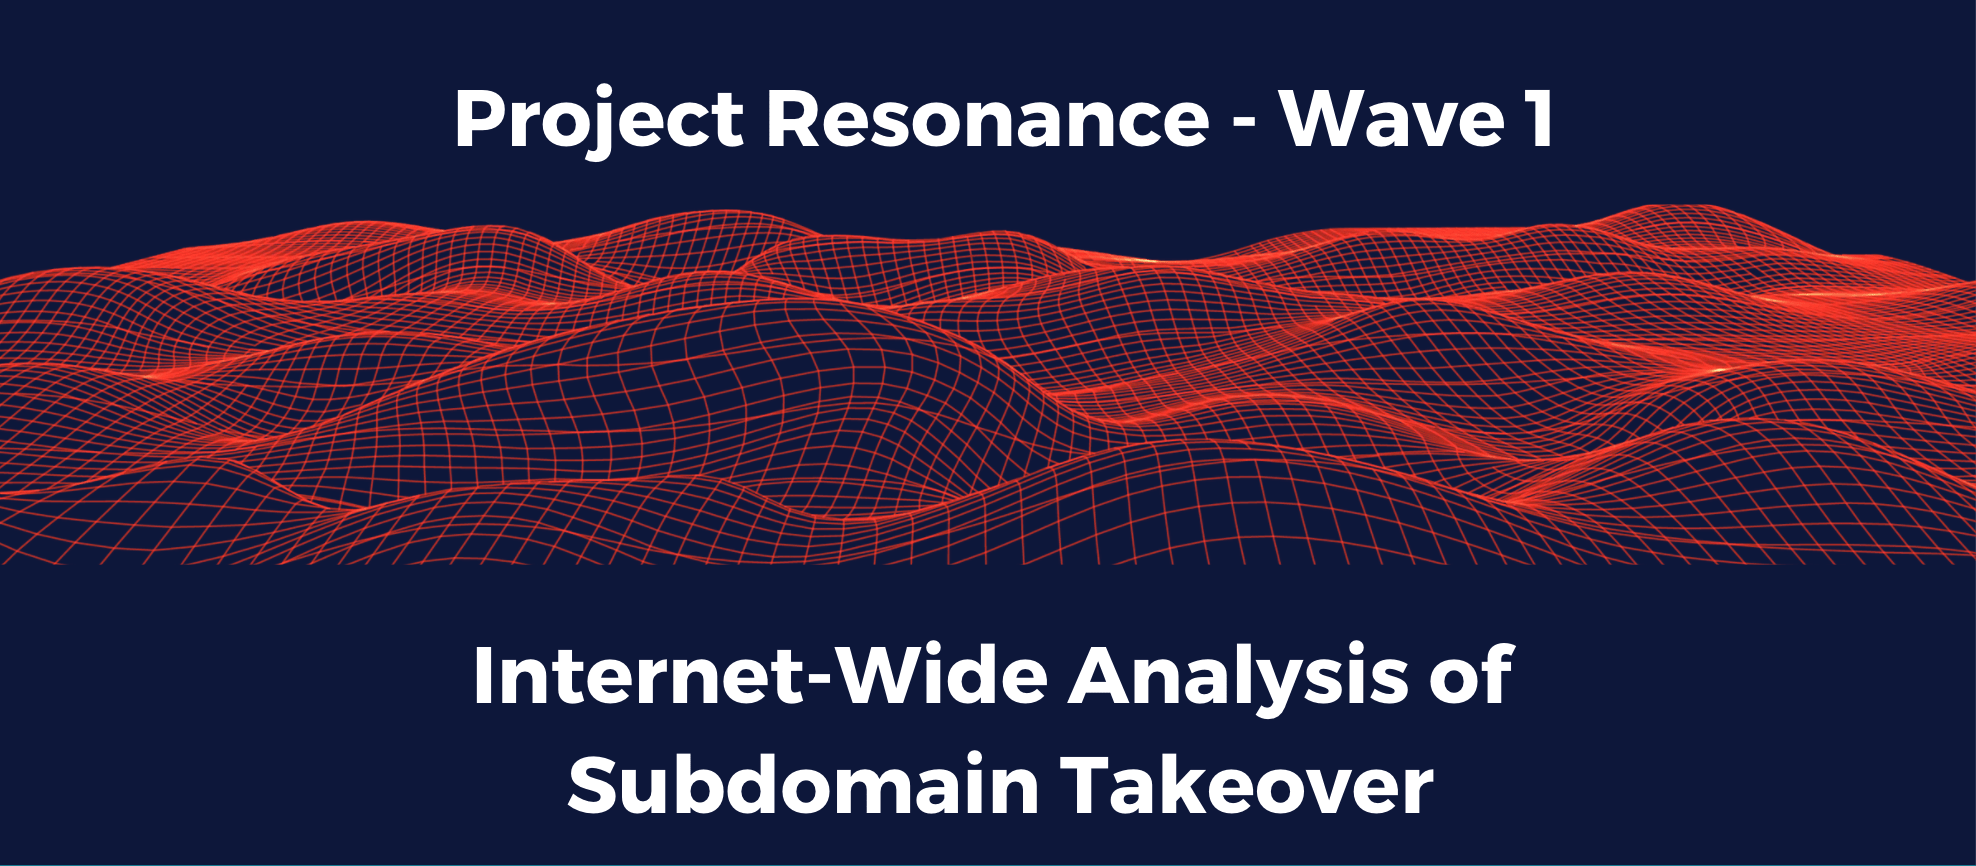 Project Resonance Wave 1: Internet-Wide Analysis of Subdomain Takeover